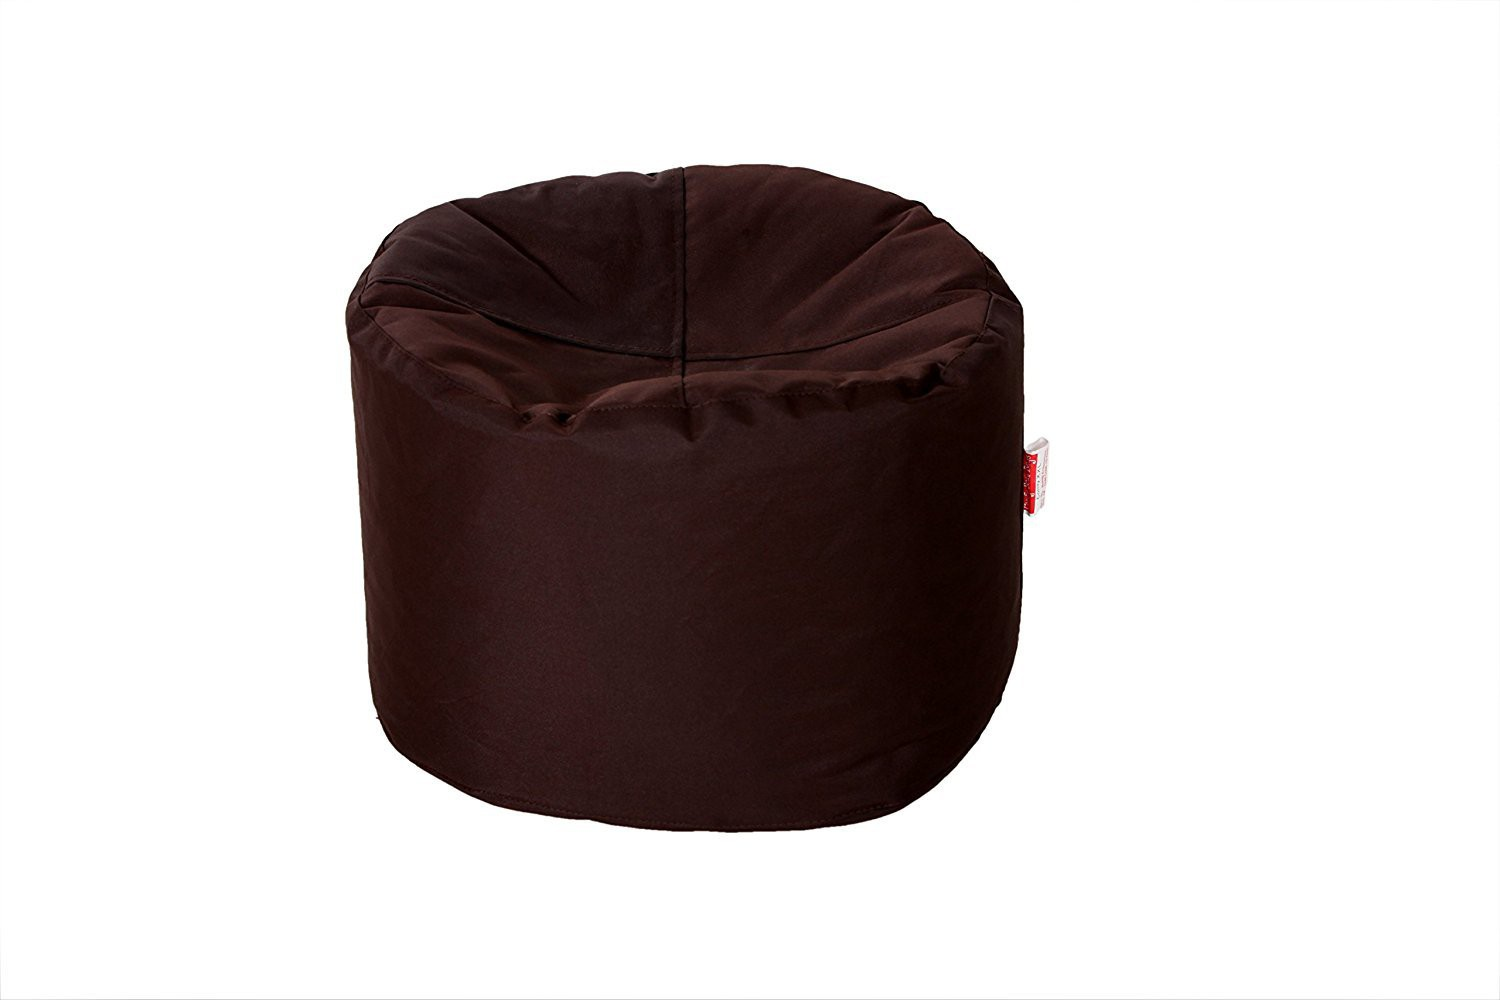 View Furniture Land XXL Bean Bag Cover(Brown) Furniture (Furniture Land)